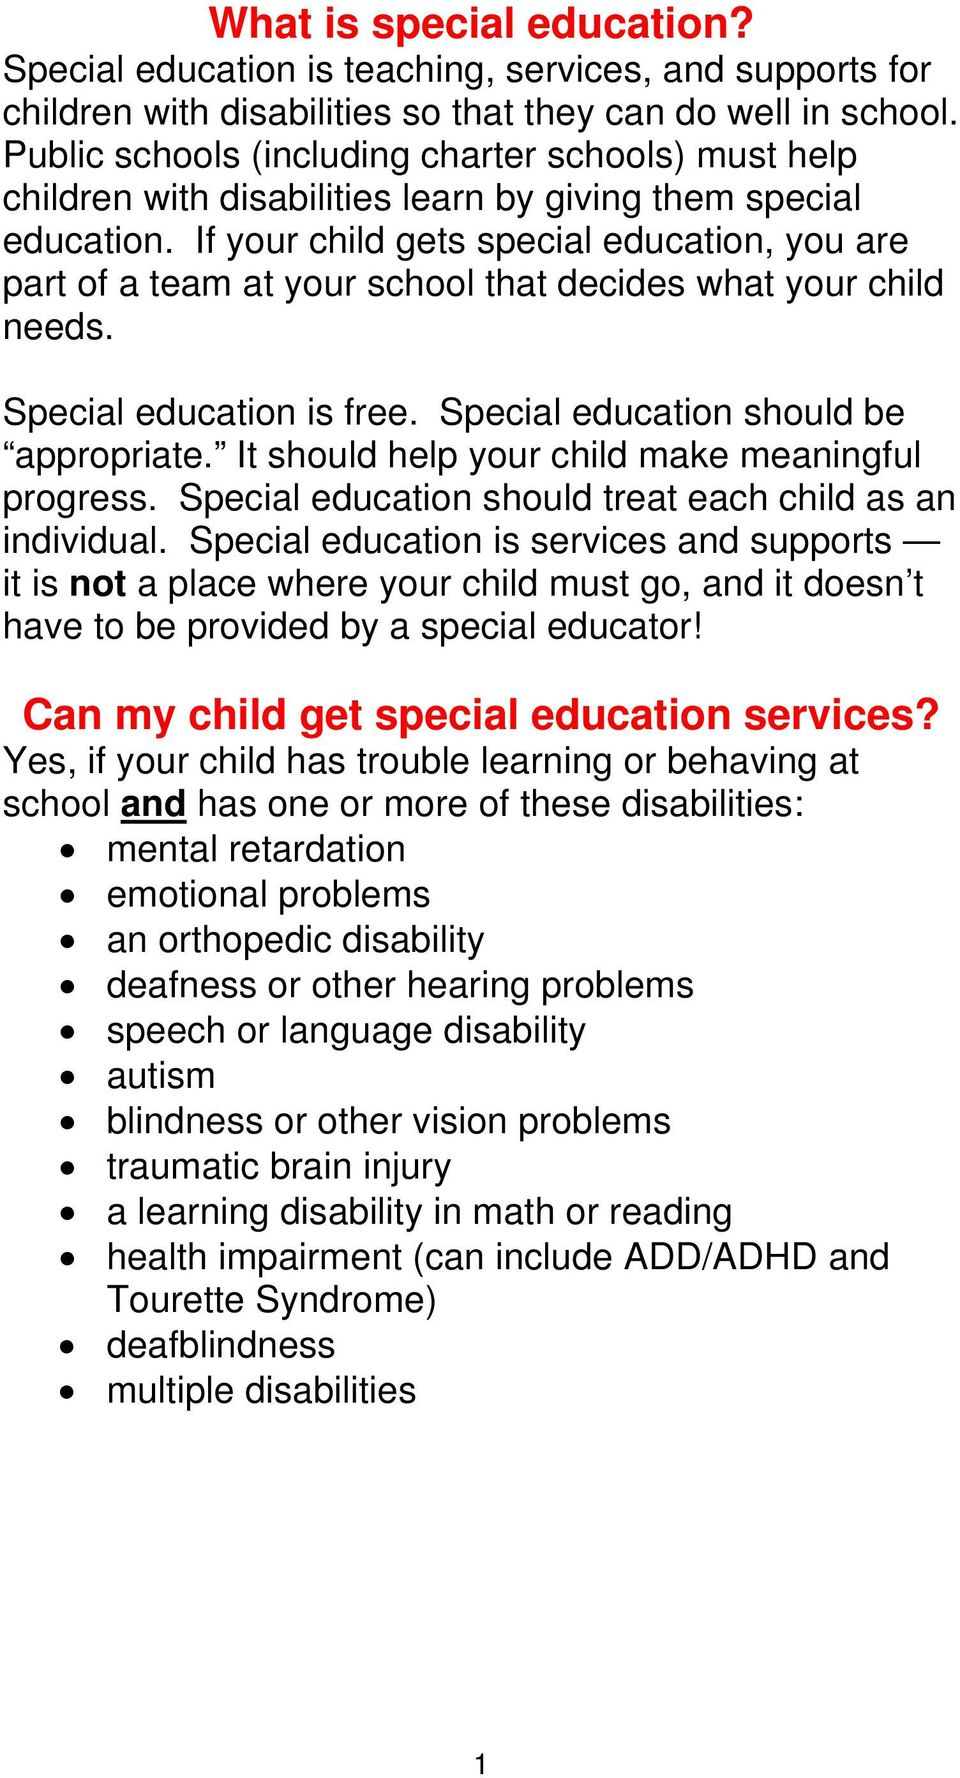 If your child gets special education, you are part of a team at your school that decides what your child needs. Special education is free. Special education should be appropriate.